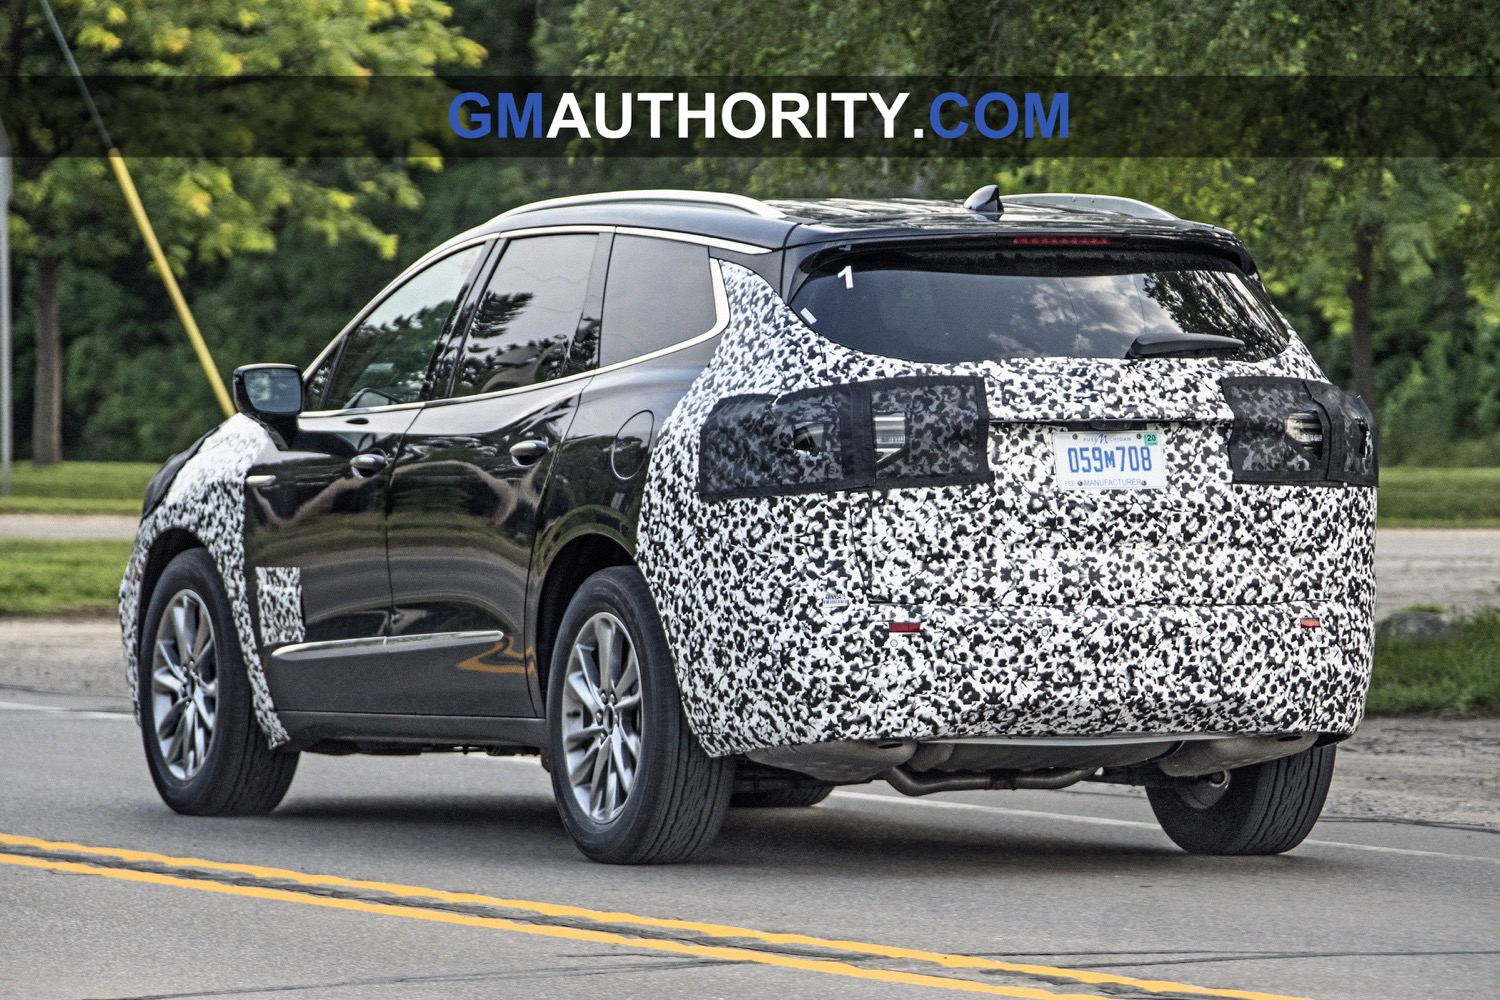 Buick Enclave Refresh Pushed Back To 2022 | Gm Authority 2022 Buick Enclave Interior, Features, Fwd